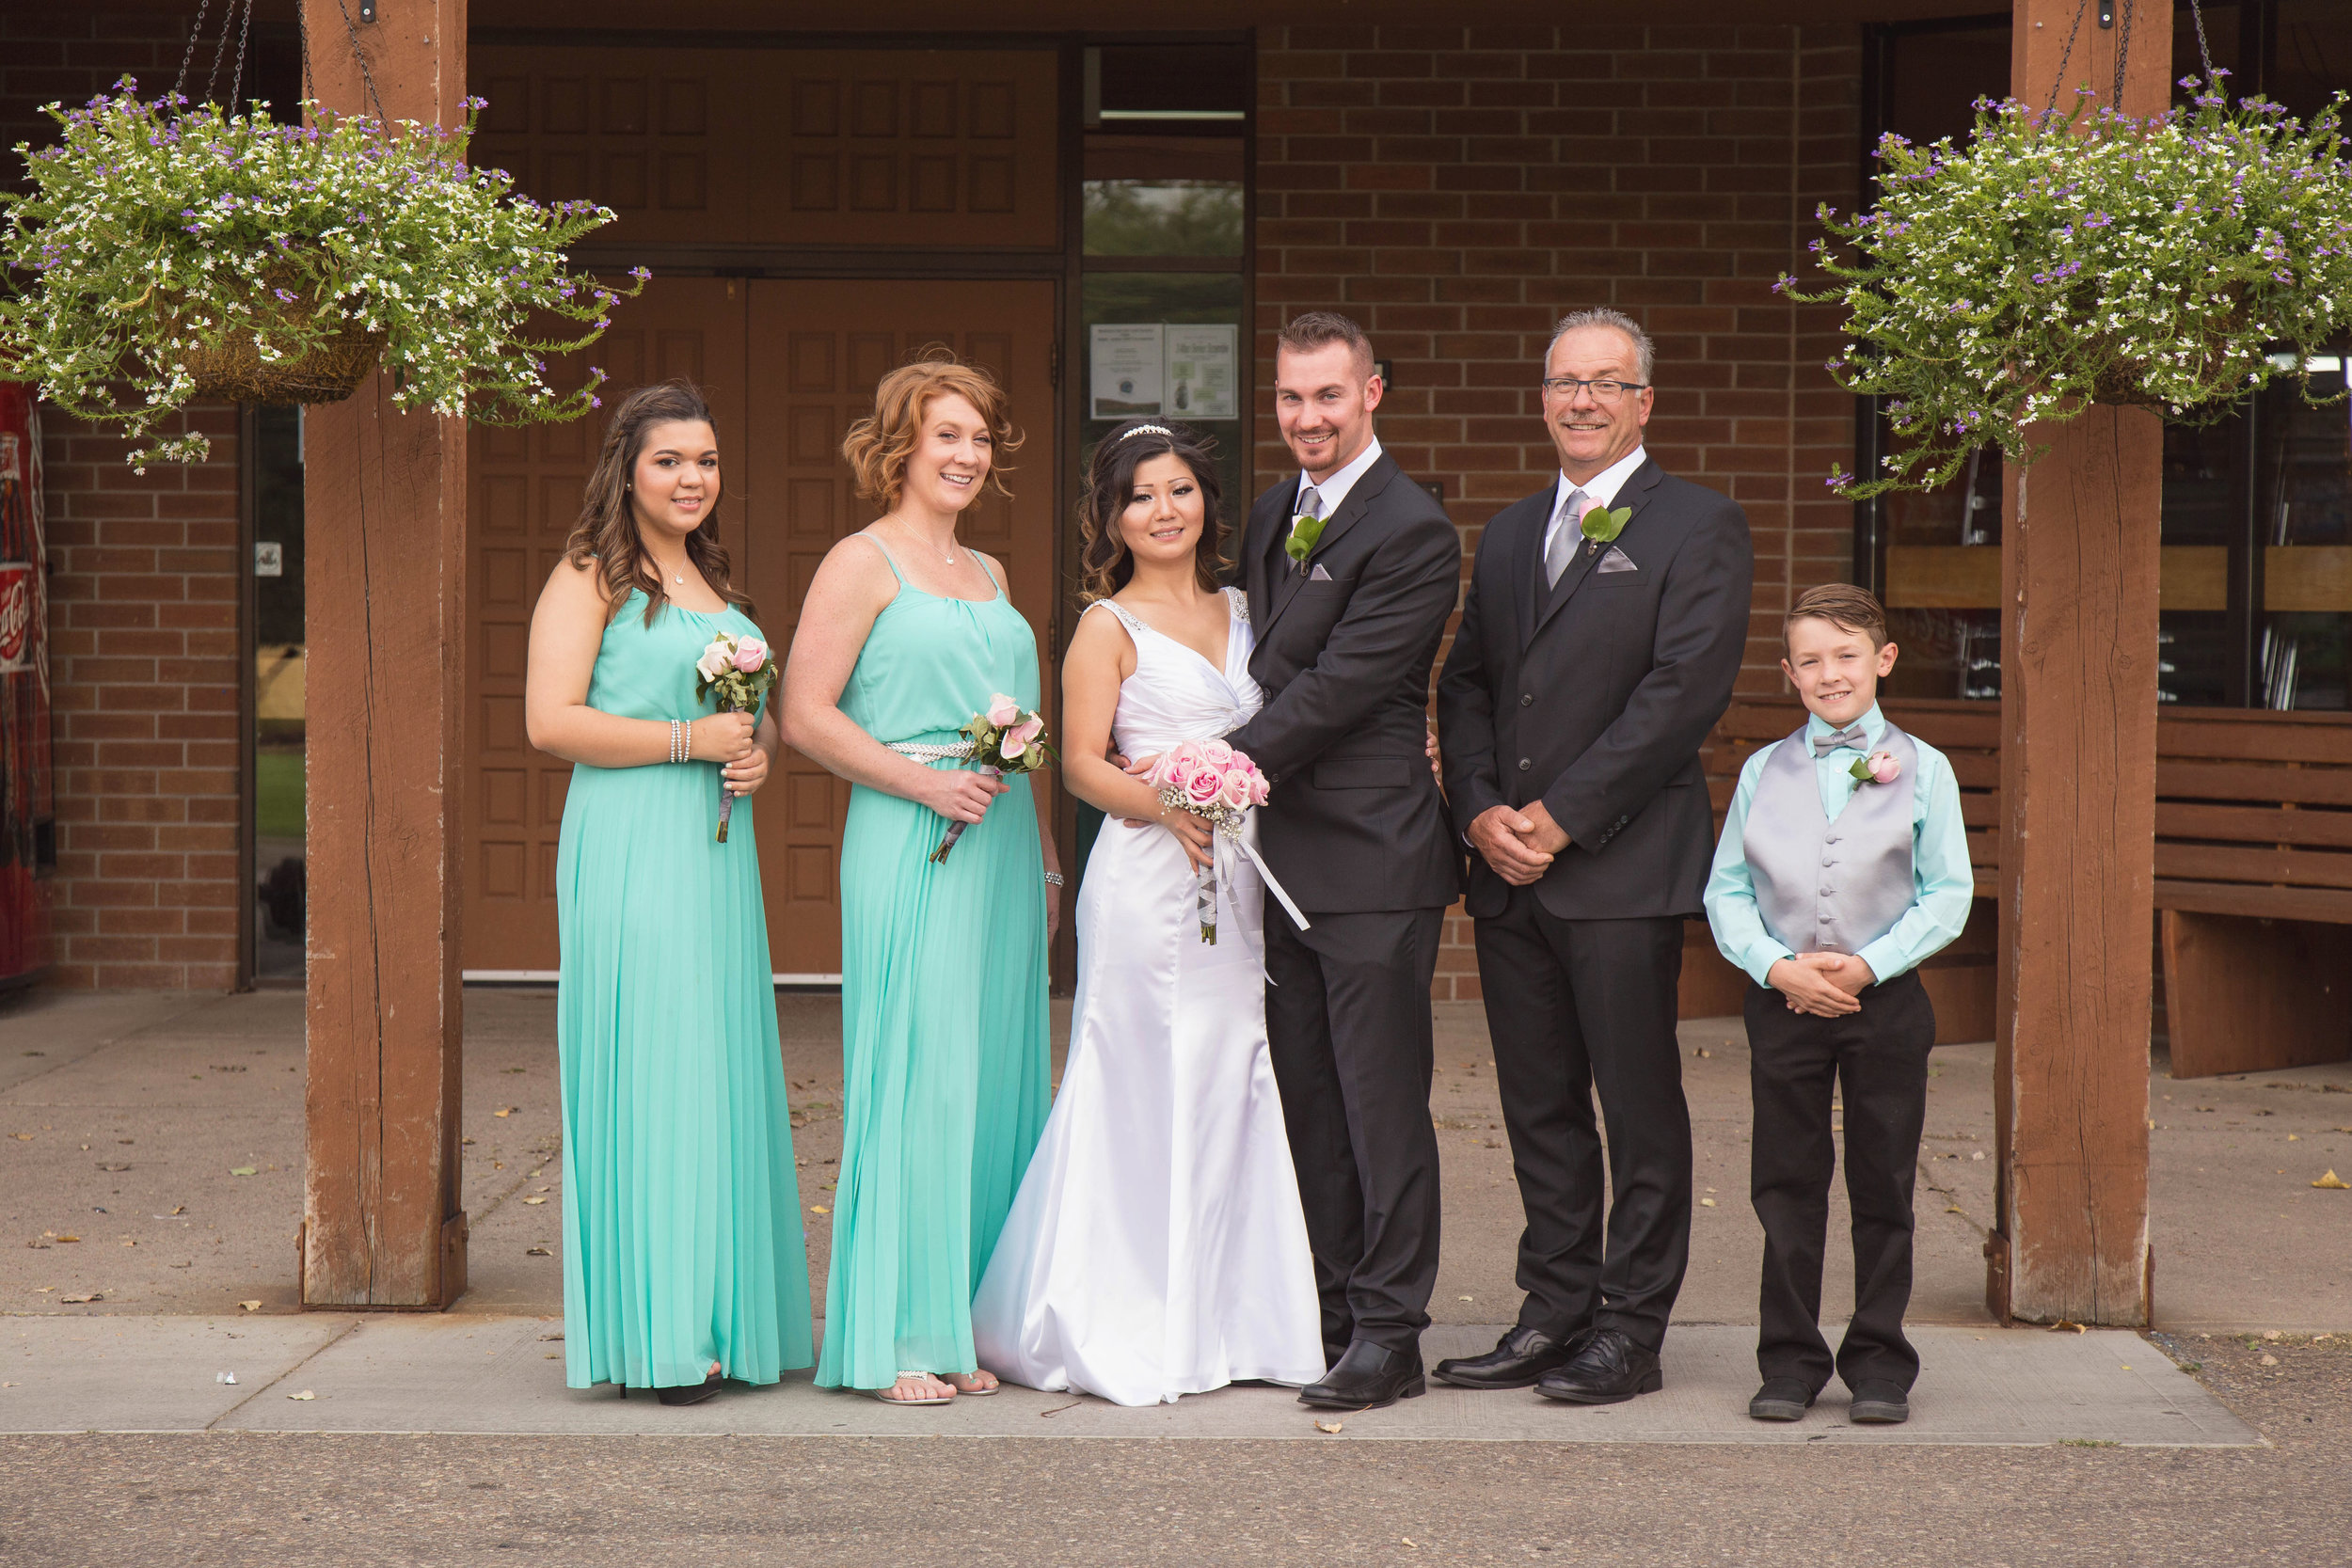 medicine-hat-golf-course-wedding_08.jpg